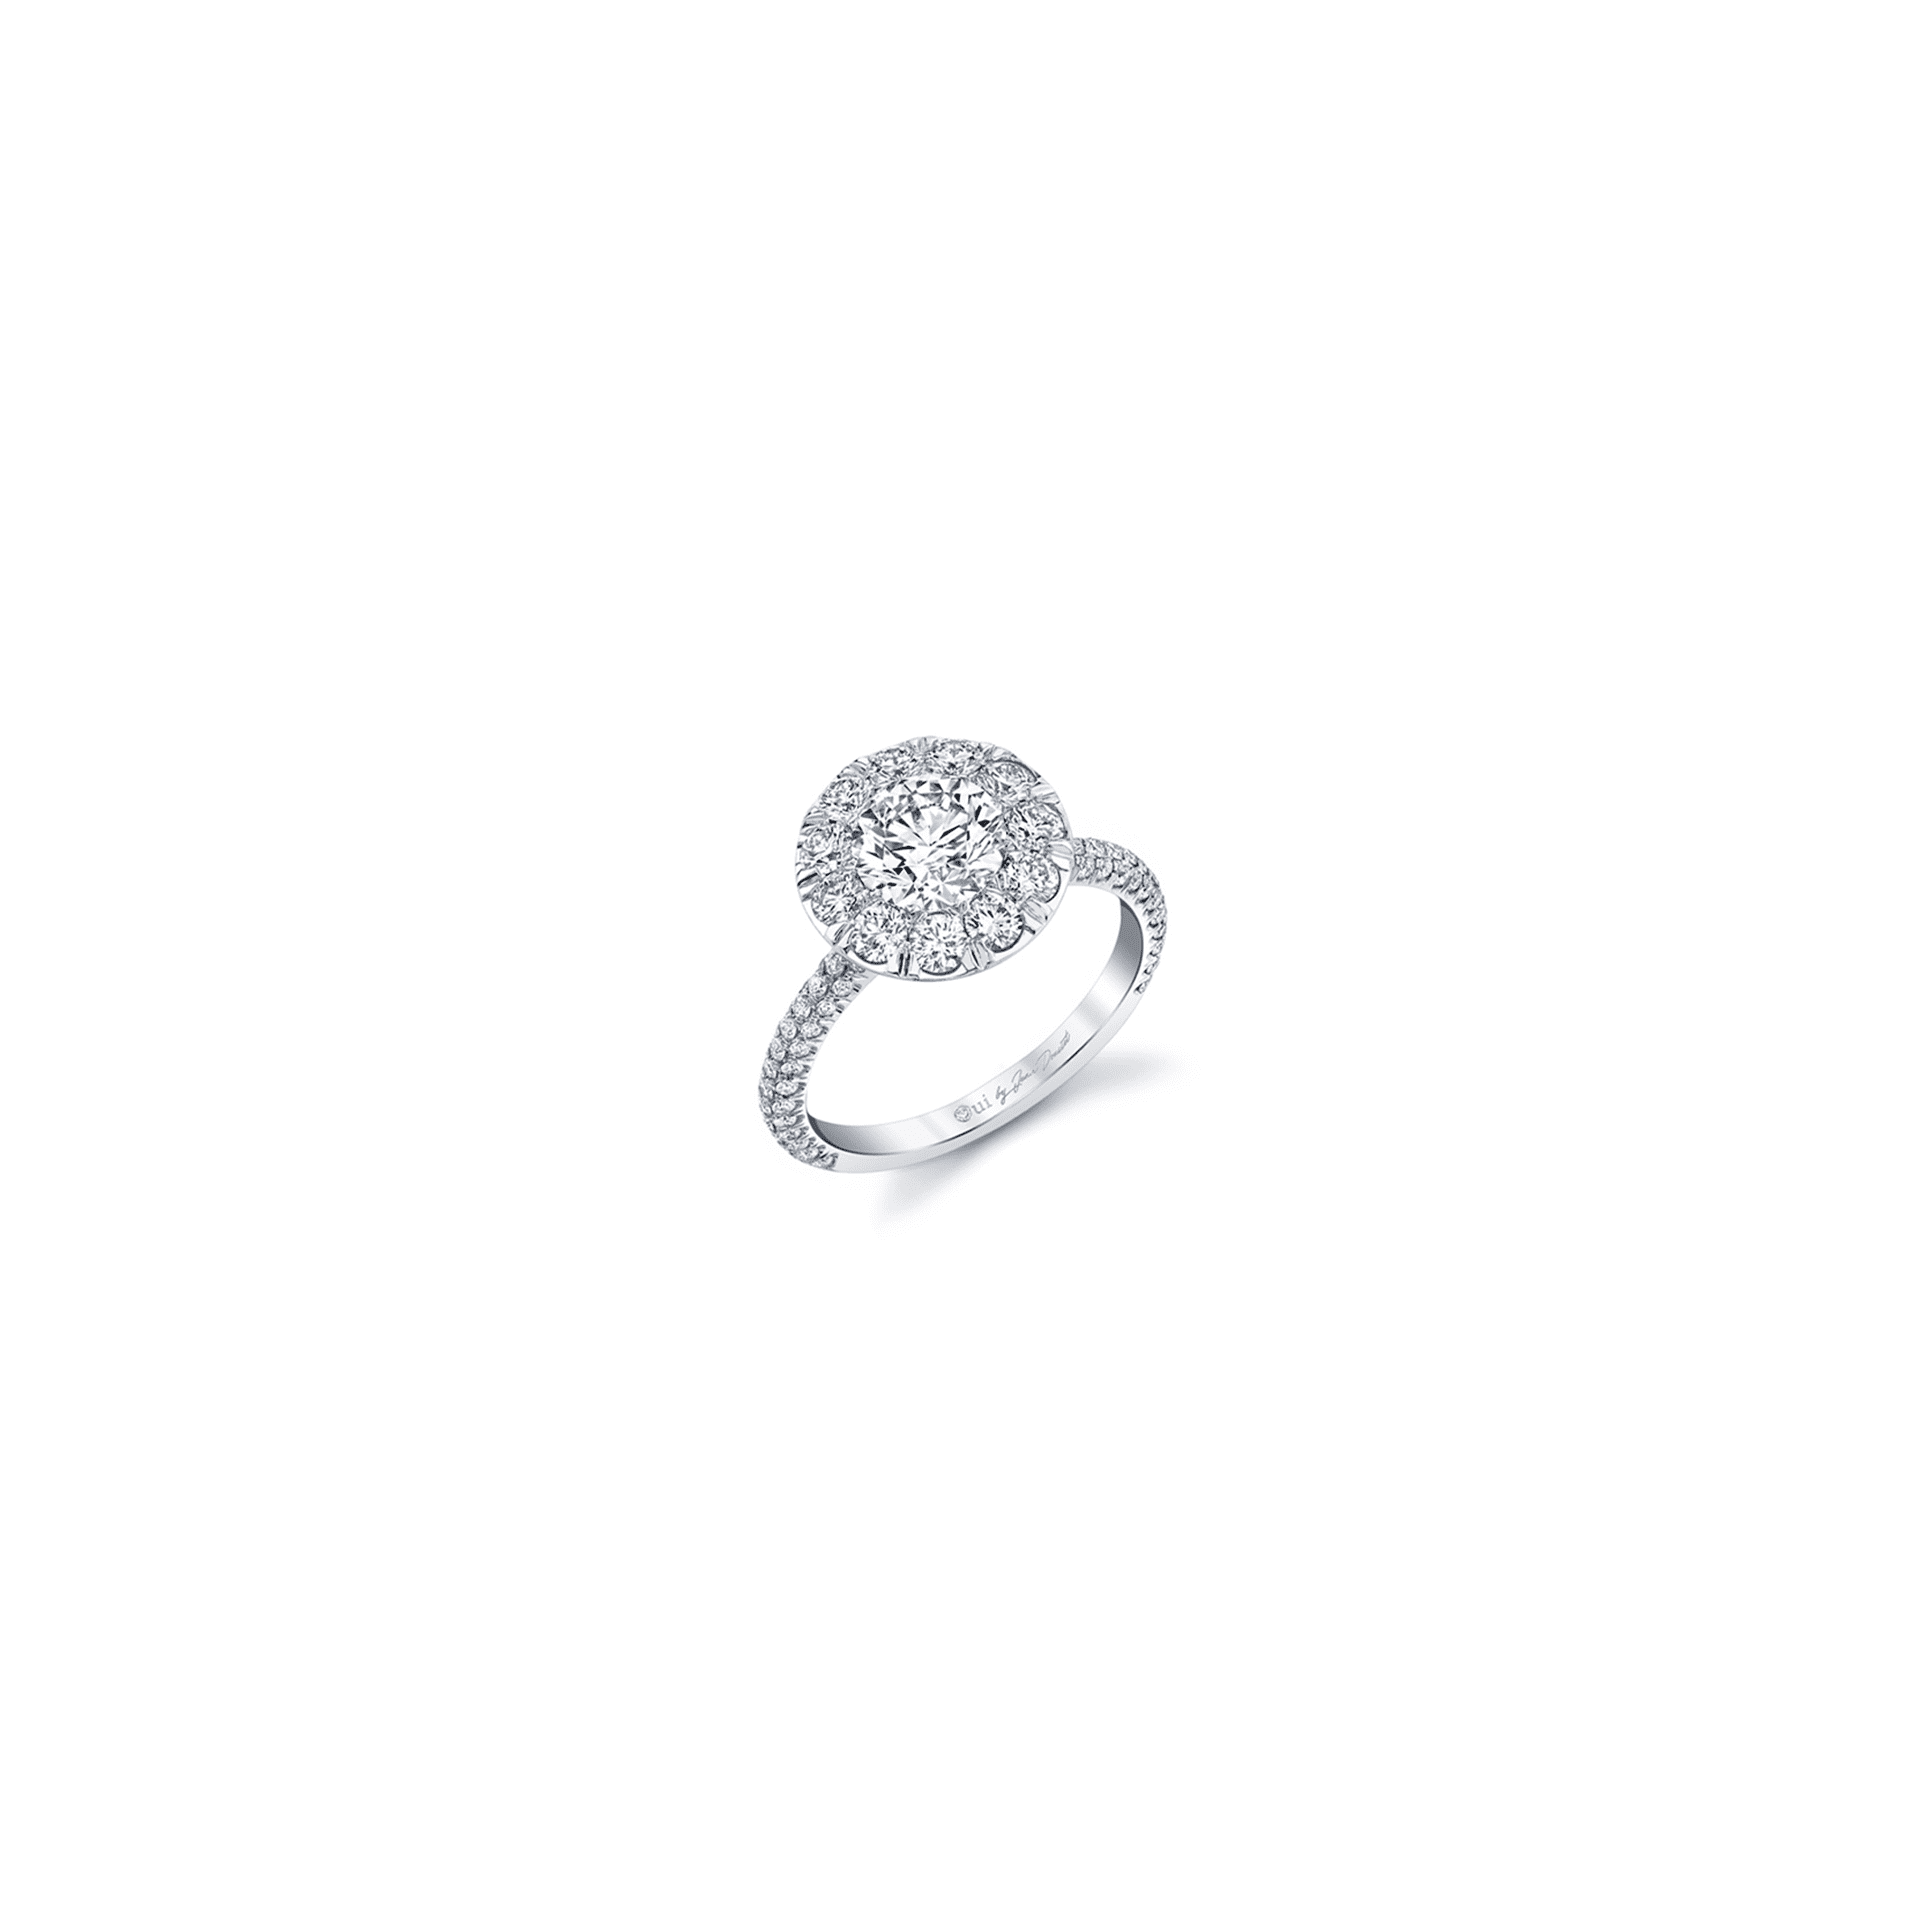 Jacqueline Round Brilliant Seamless Solitaire® Engagement Ring with diamond pavé in 18k White Gold Front View by Oui by Jean Dousset